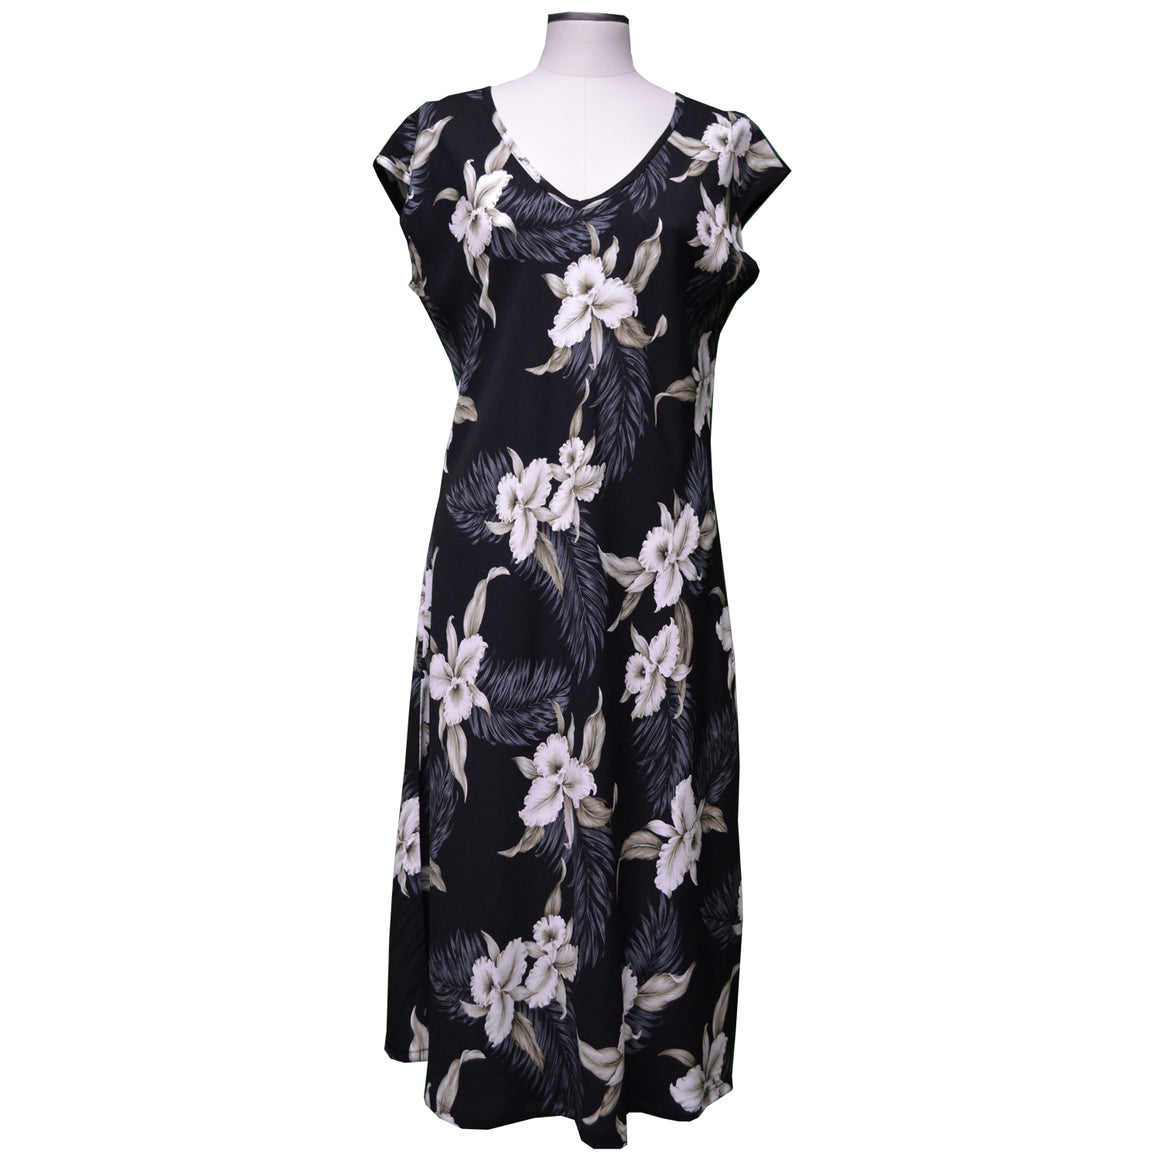 Kahala Orchid Black Mid-Length Dress with Cap Sleeves